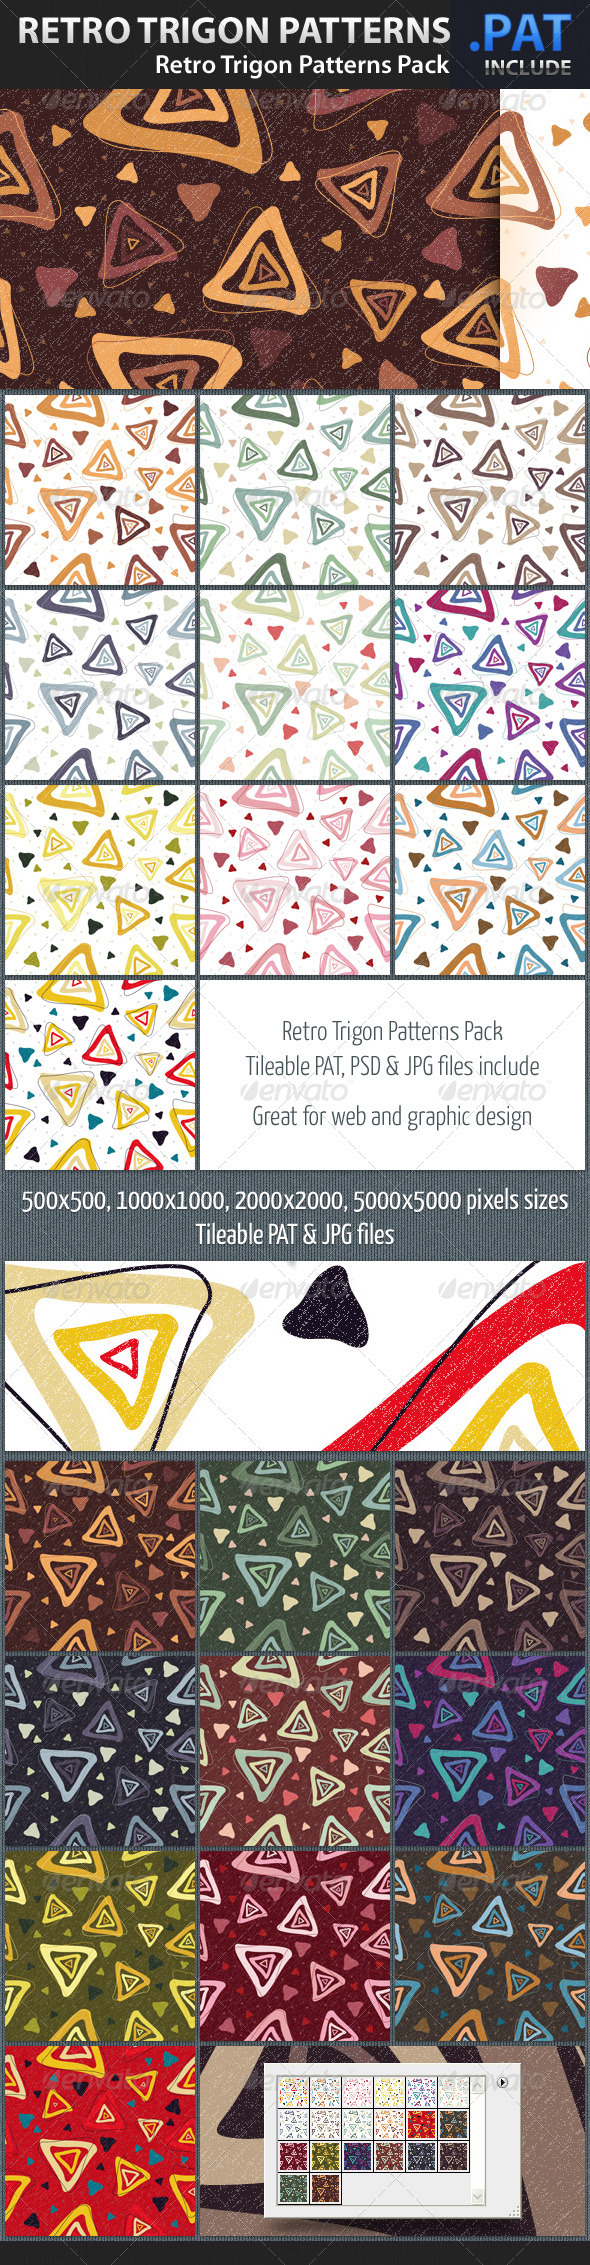 Retro Trigon Patterns Pack - Art Textures